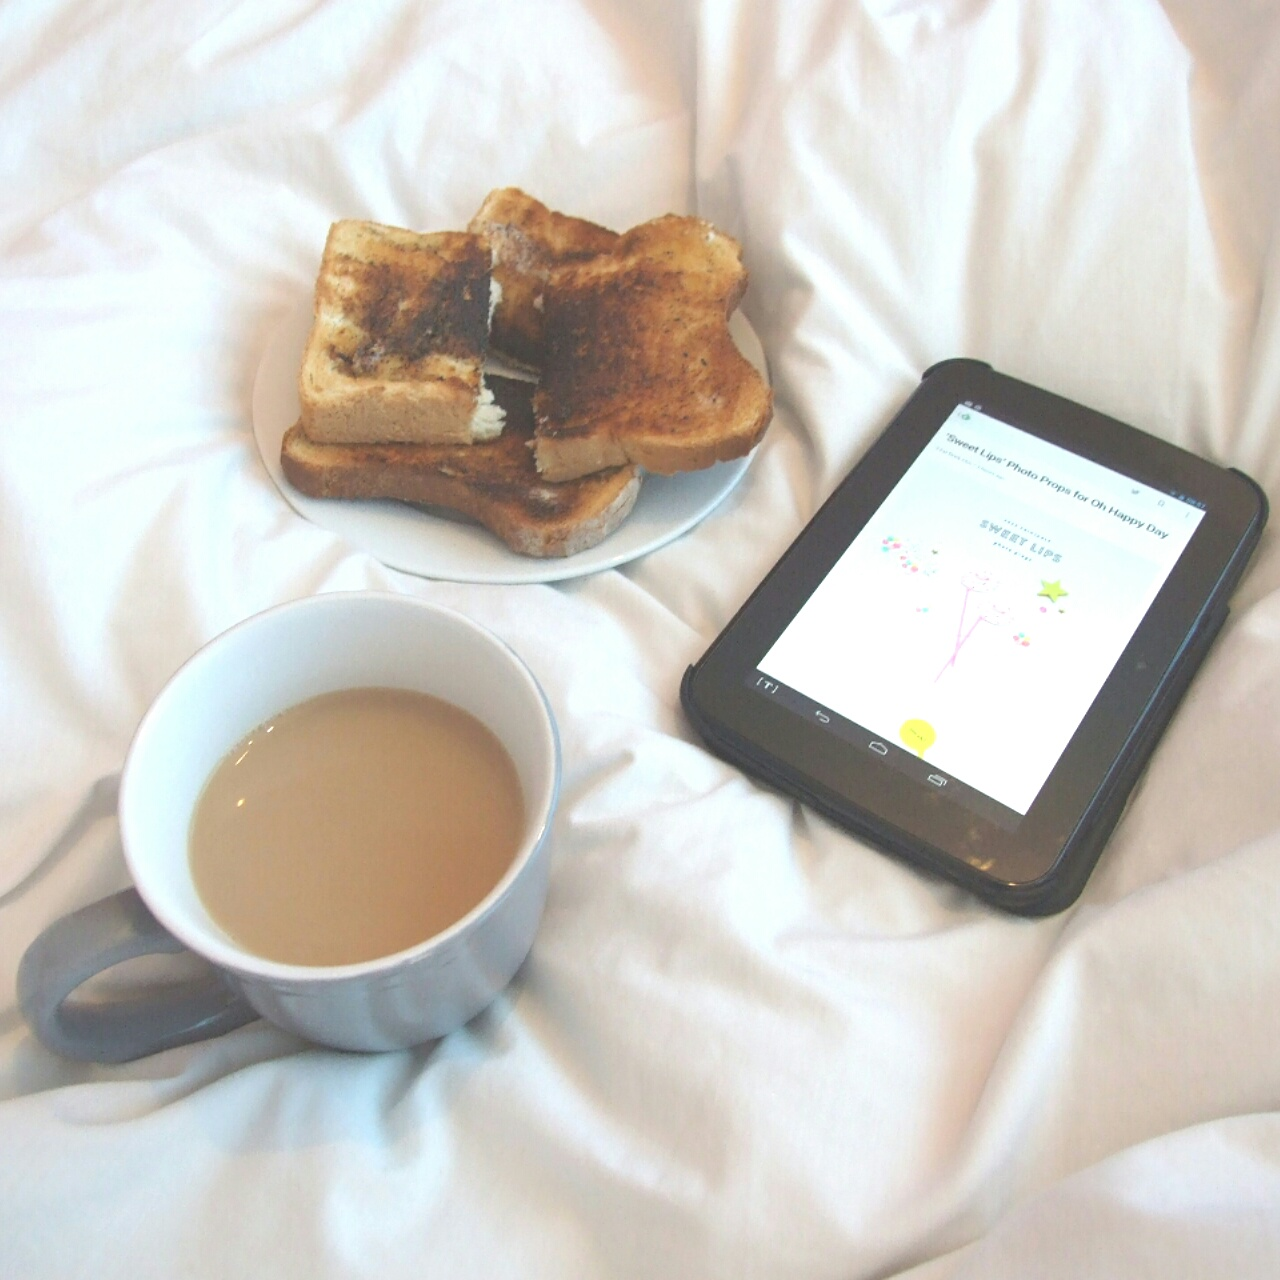 Tea, toast and catching up on some blog reading.